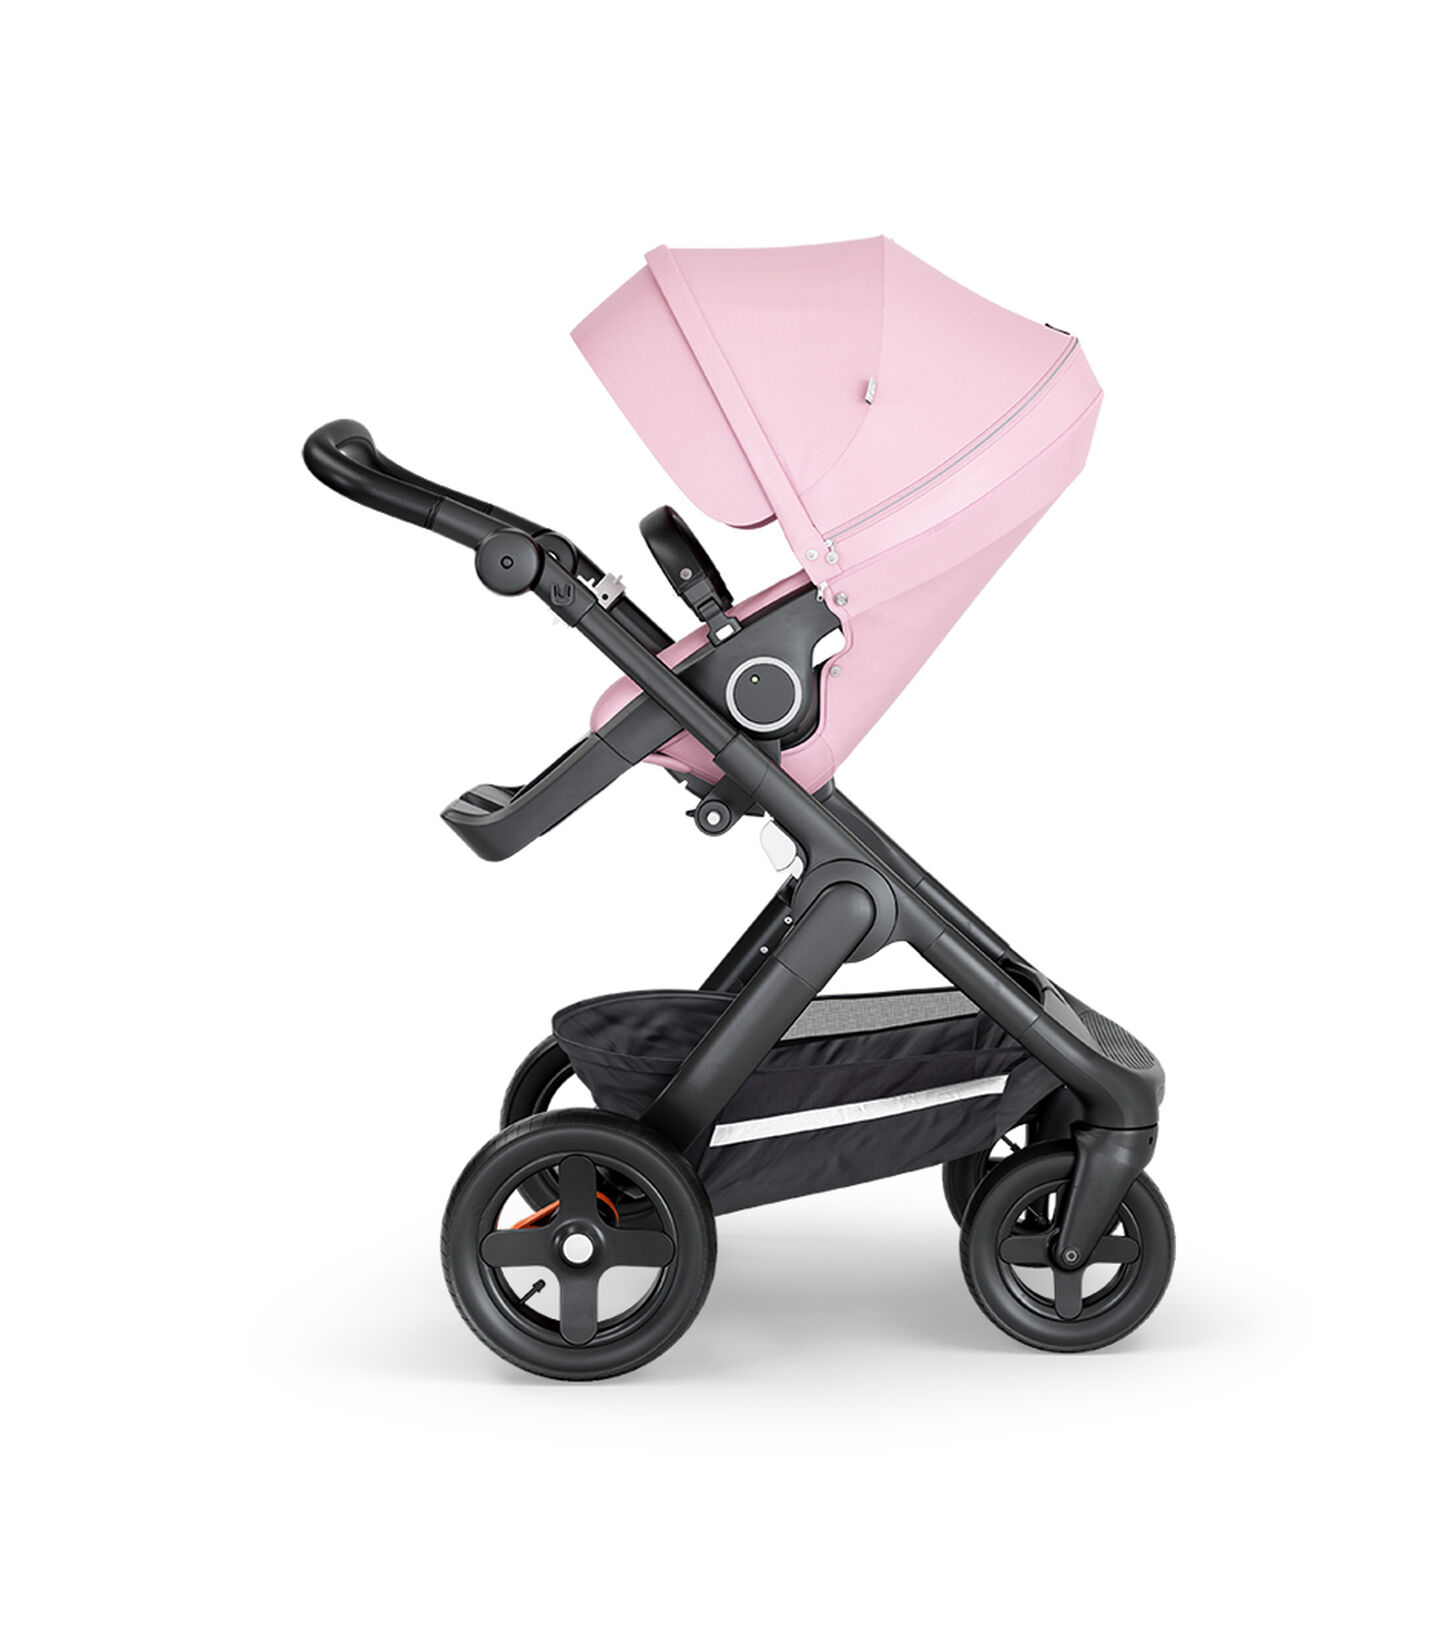 Stokke® Trailz™ with Black Chassis, Black Leatherette and Terrain Wheels. Stokke® Stroller Seat, Lotus Pink